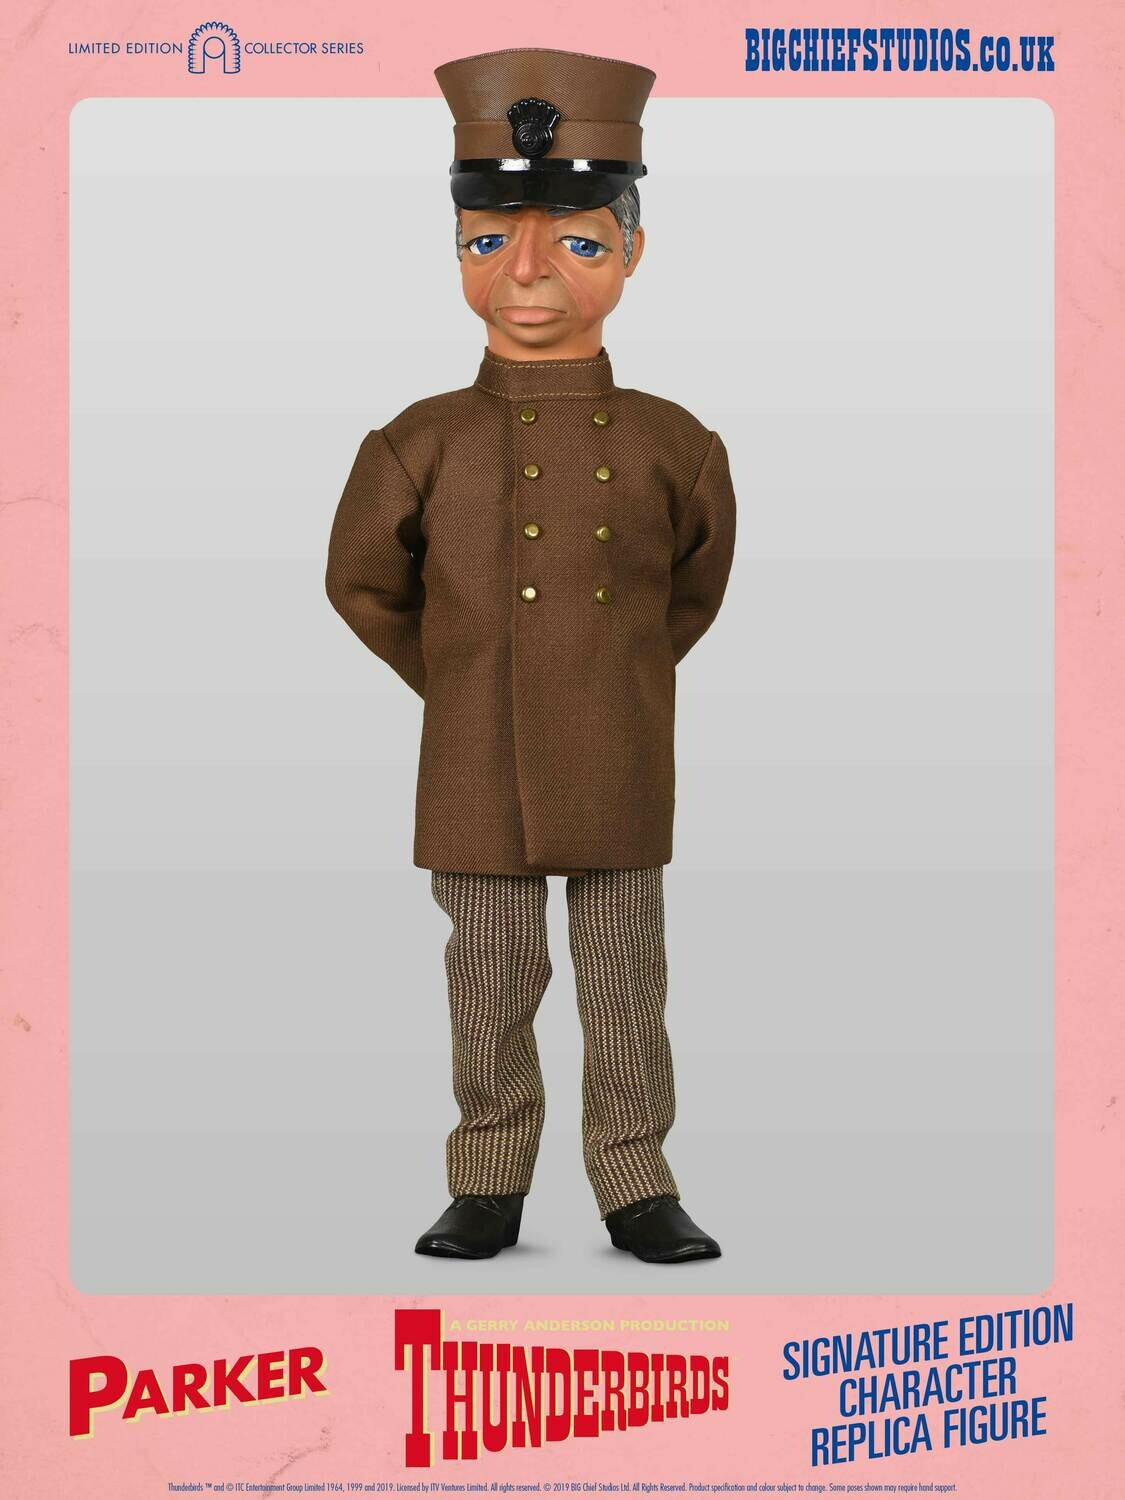 "Thunderbirds 12"" Parker Character Replica Figure Signature Edition - Limited to only 500"